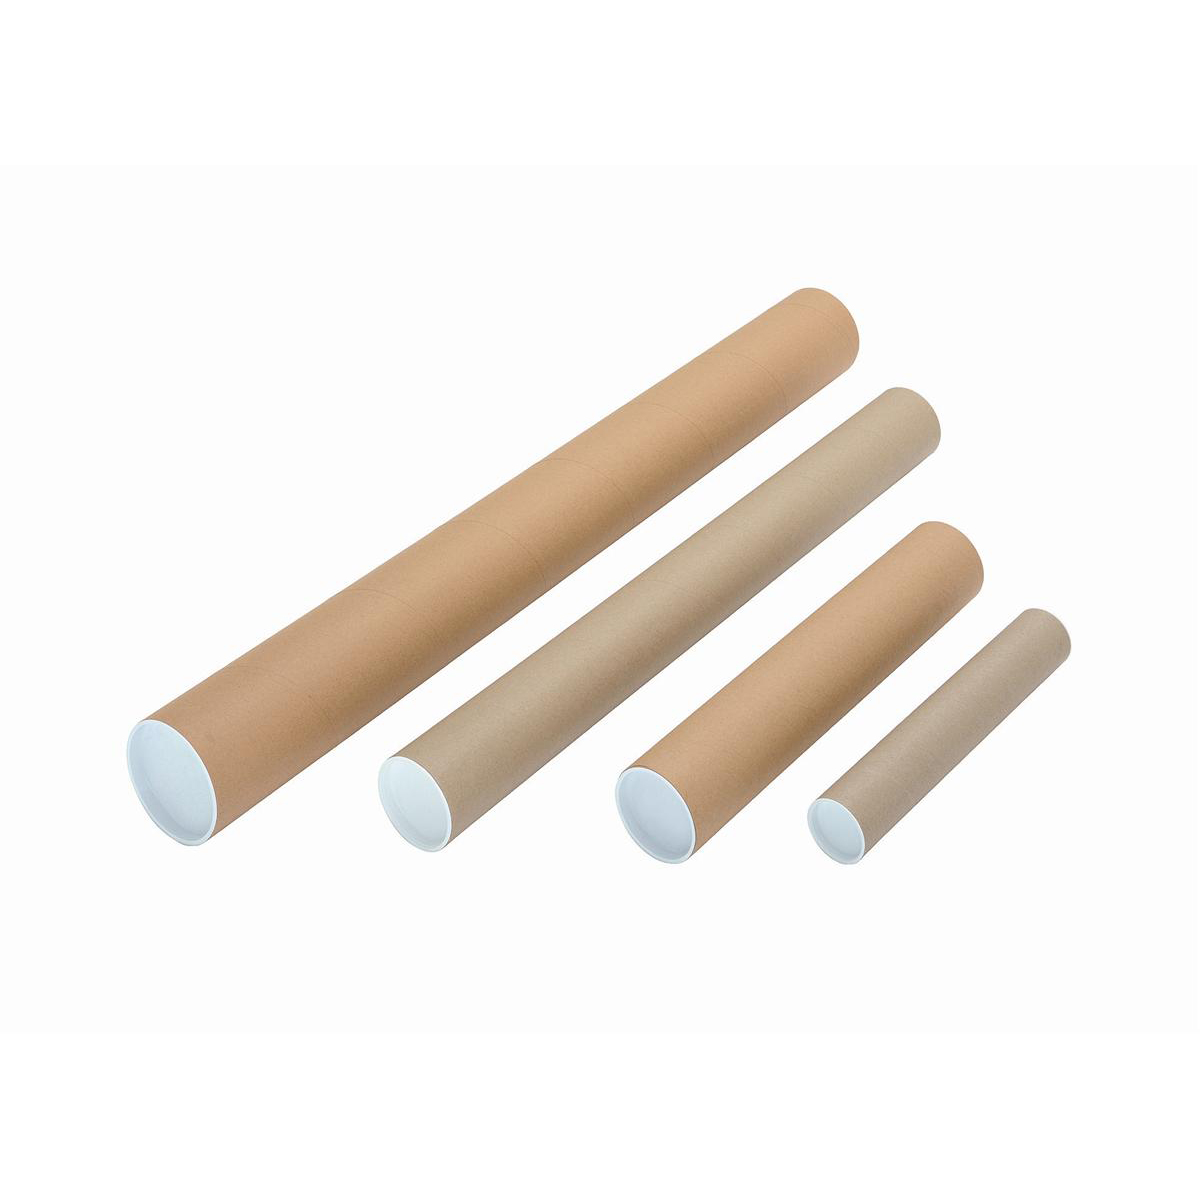 Postal Tube Cardboard with Plastic End Caps A4-A3 L330xDia.50mm [Pack 25]